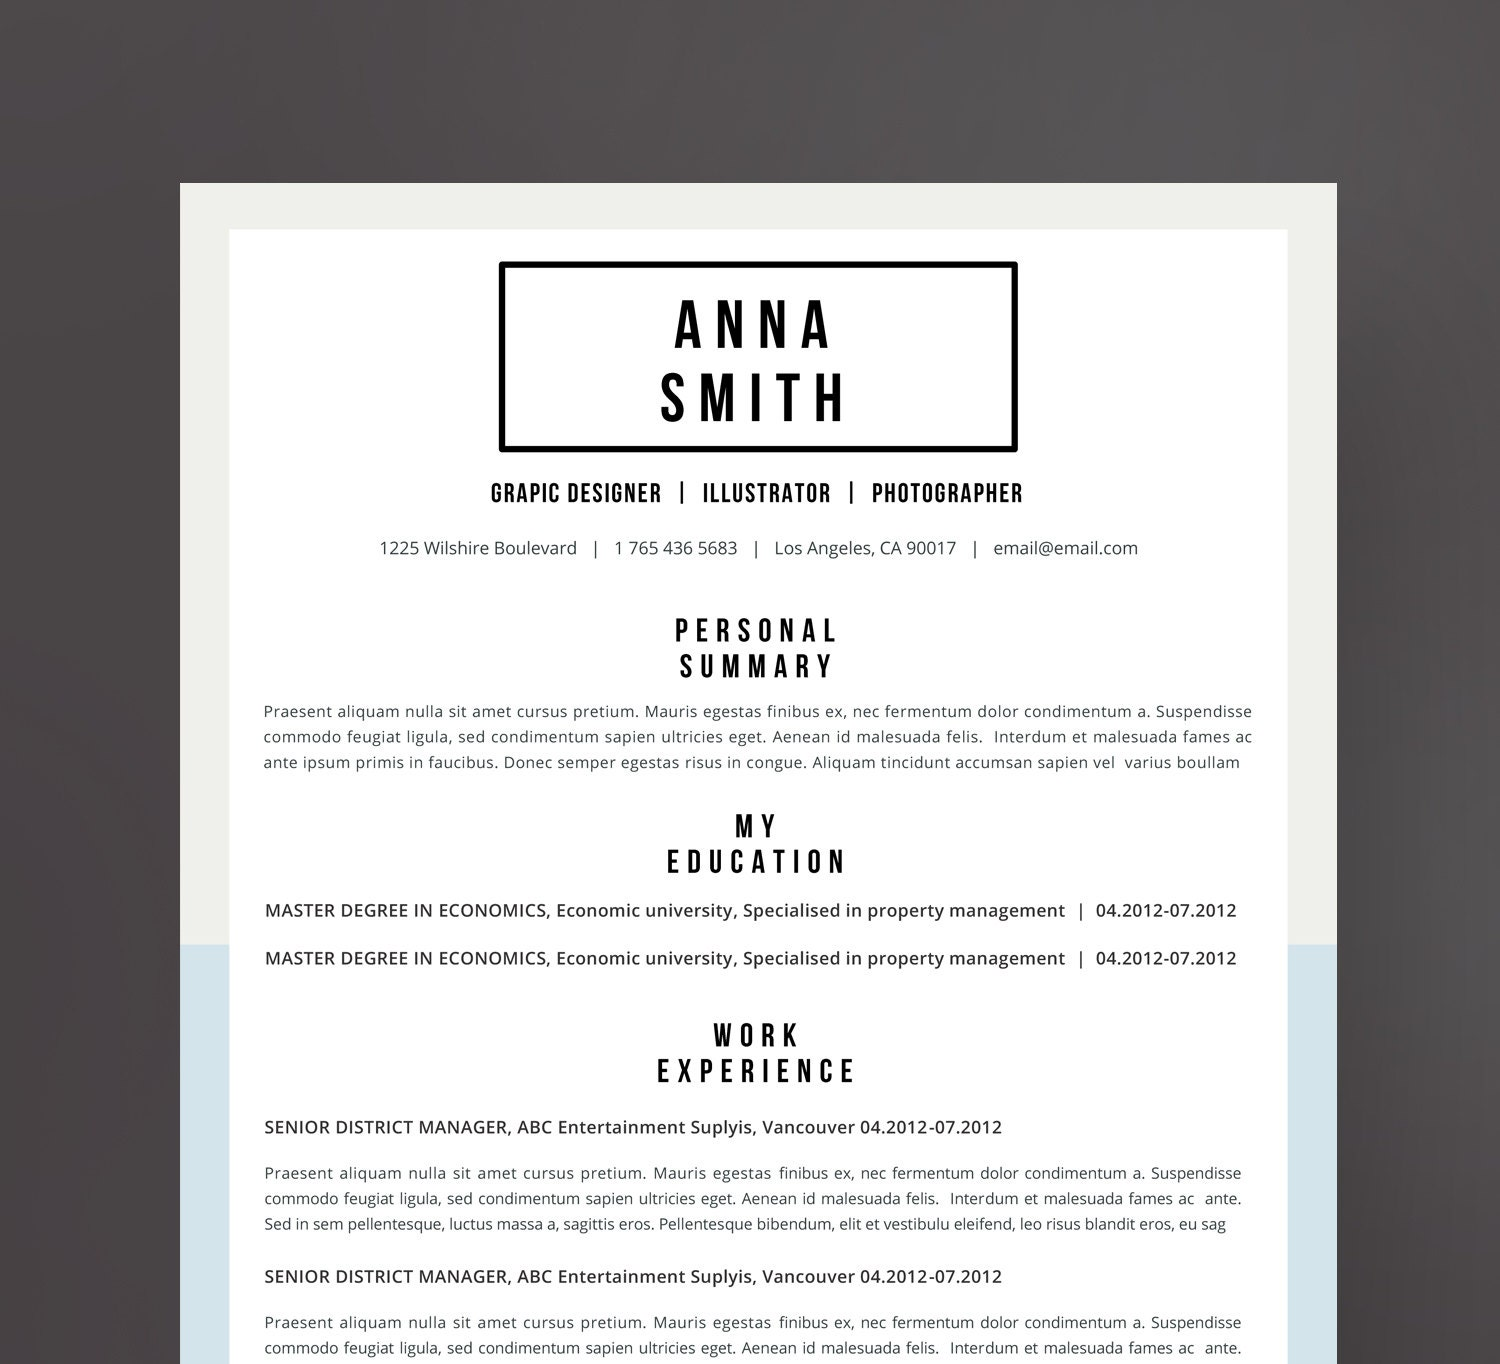 7 Free Resume Templates: Resume Template No.7 Cover Letter Reference Page / Free